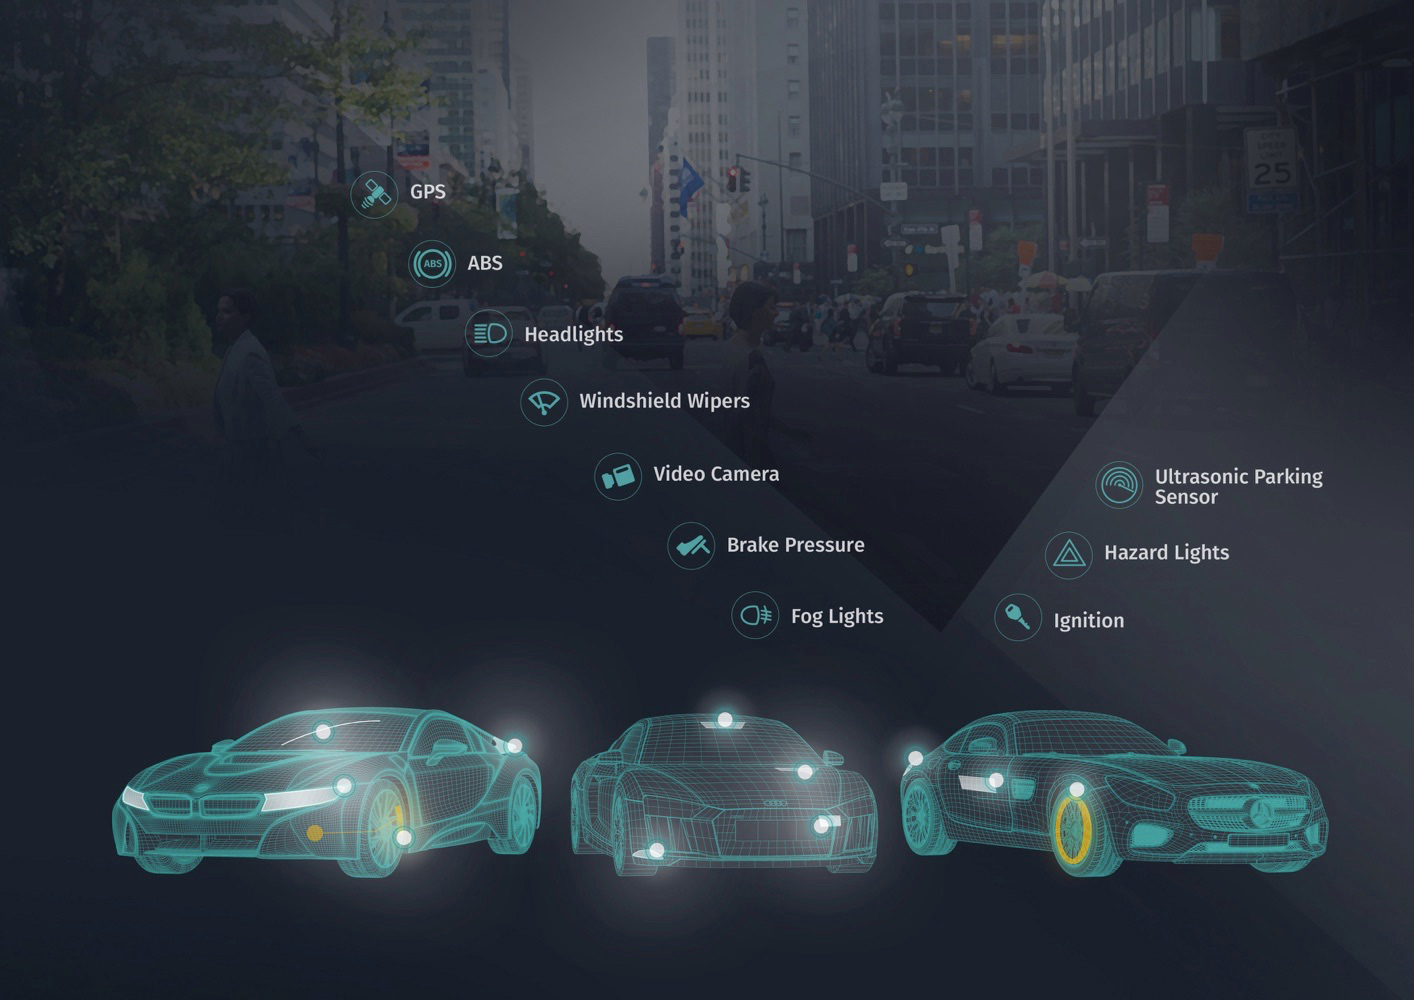 Audi Wants Cars to Talk to Each Other